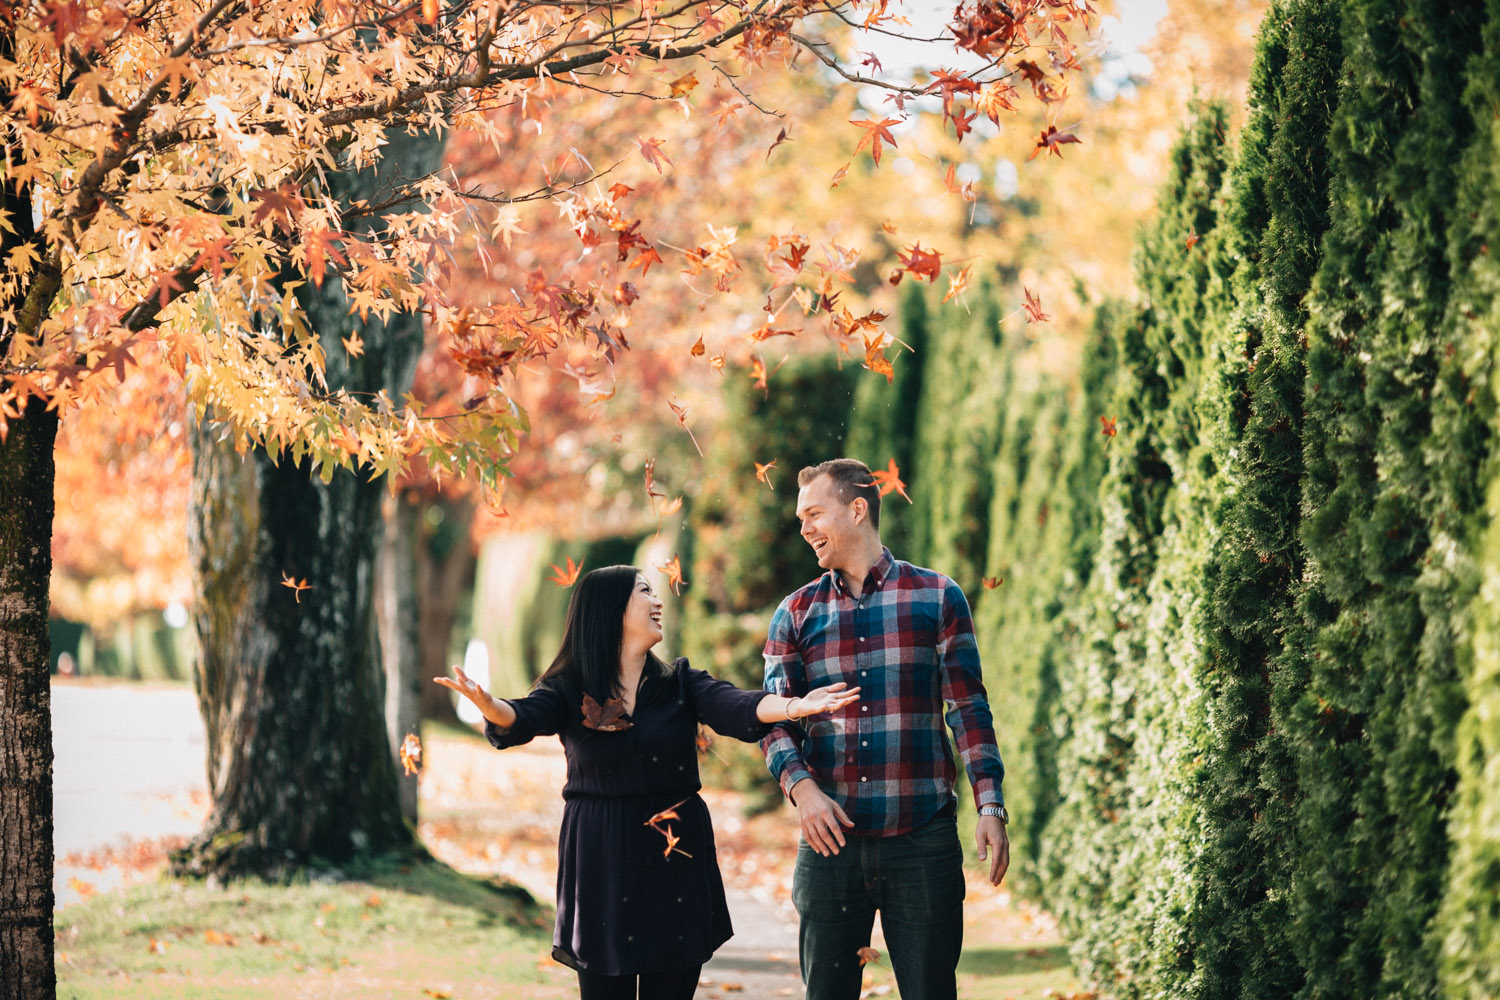 candid fall engagement photography portrait ubc vancouver